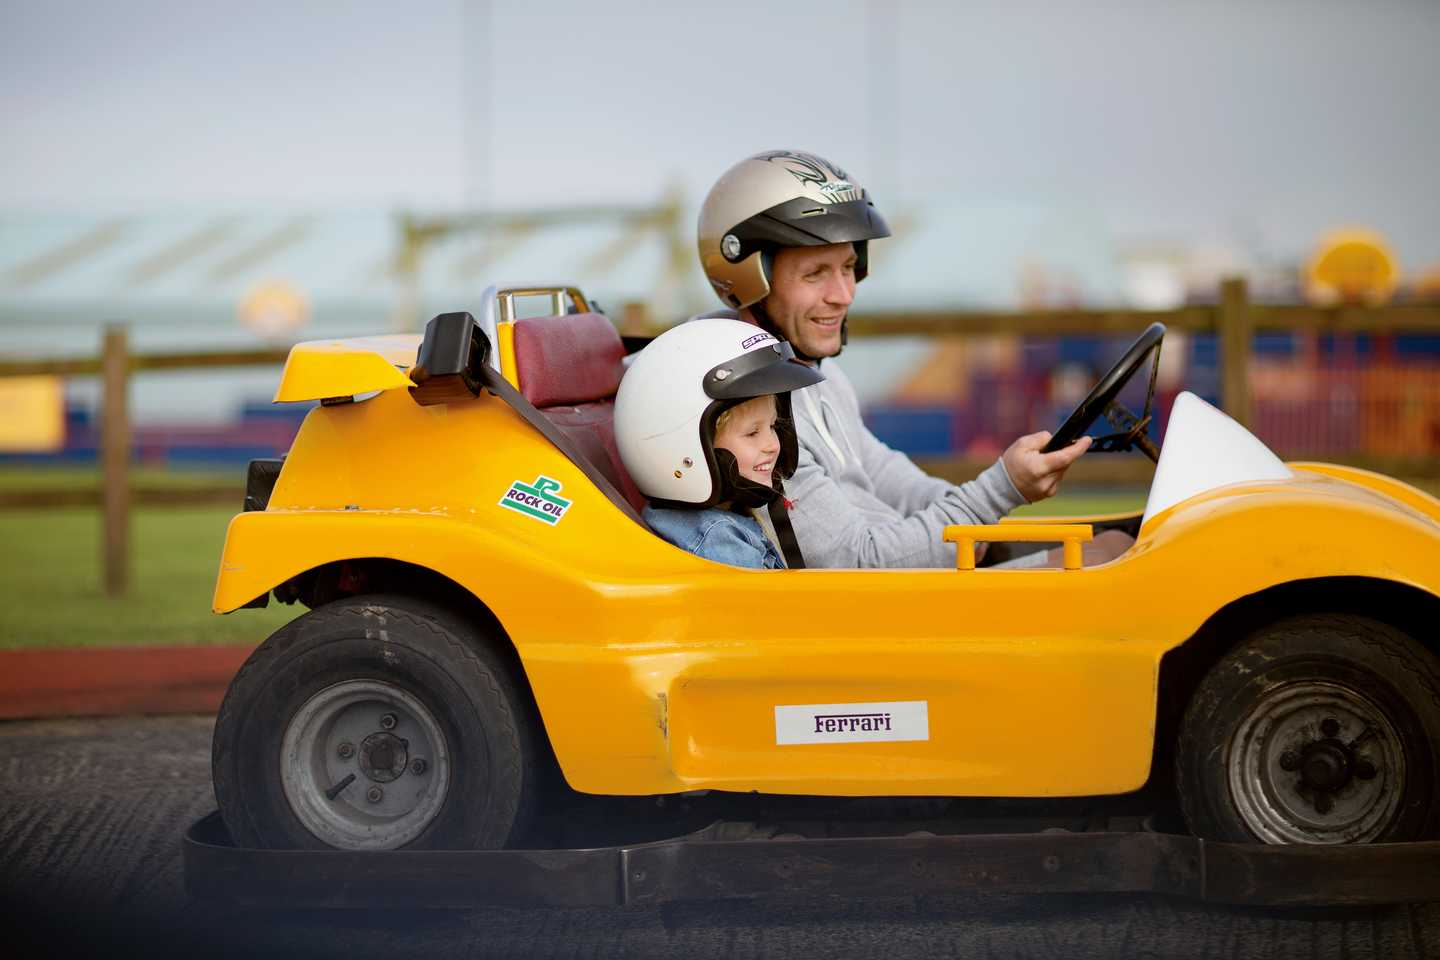 Family racing round the go-kart track